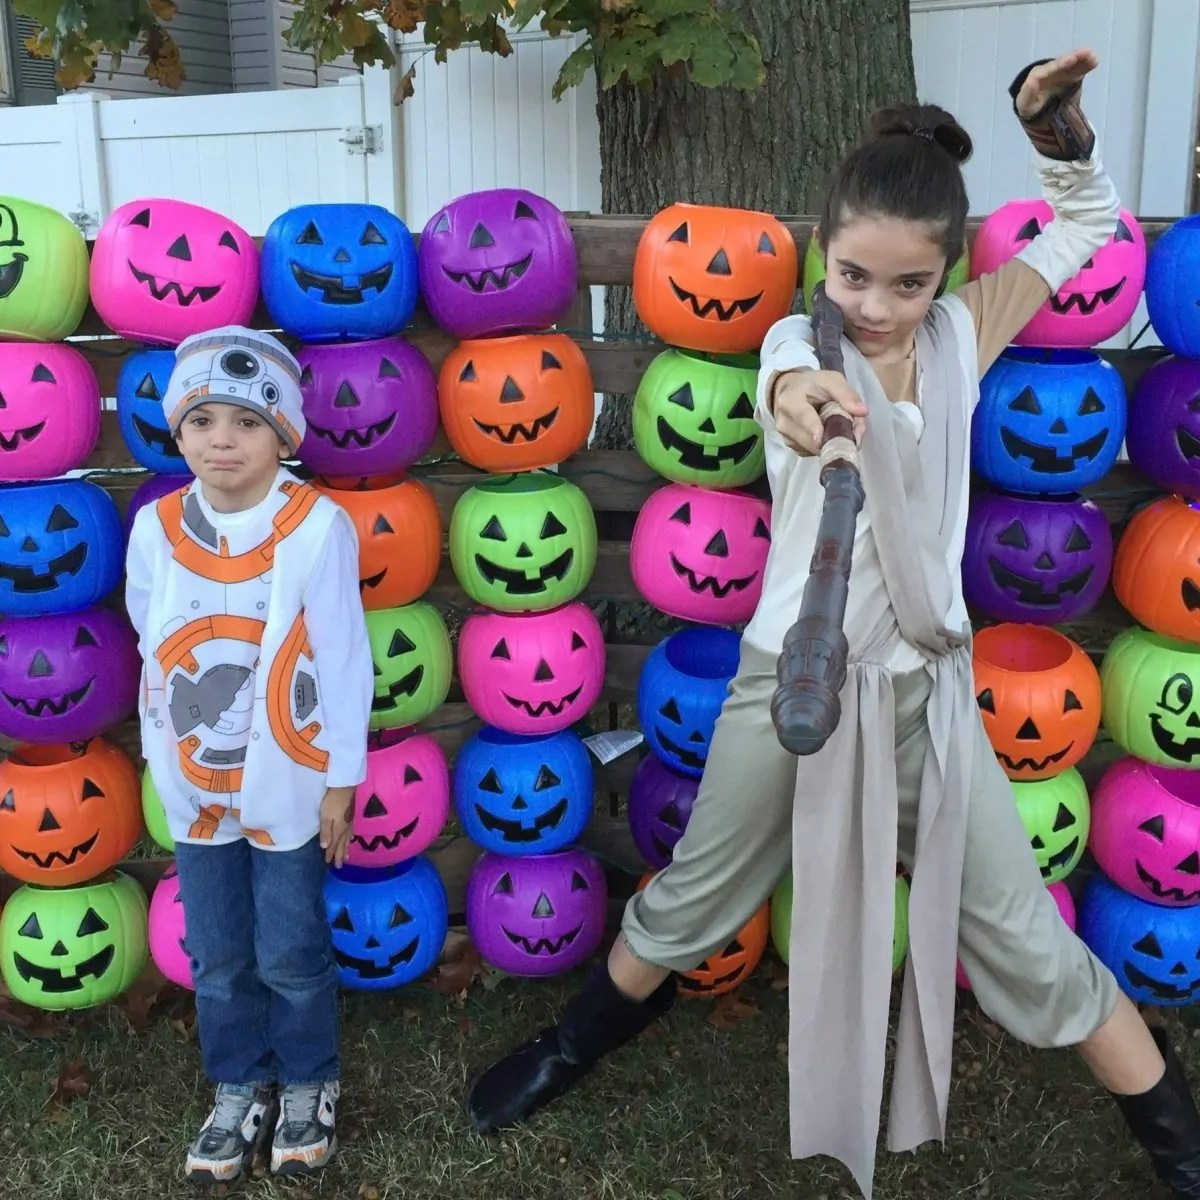 star wars costume ideas for the whole family   adventures in familyhood